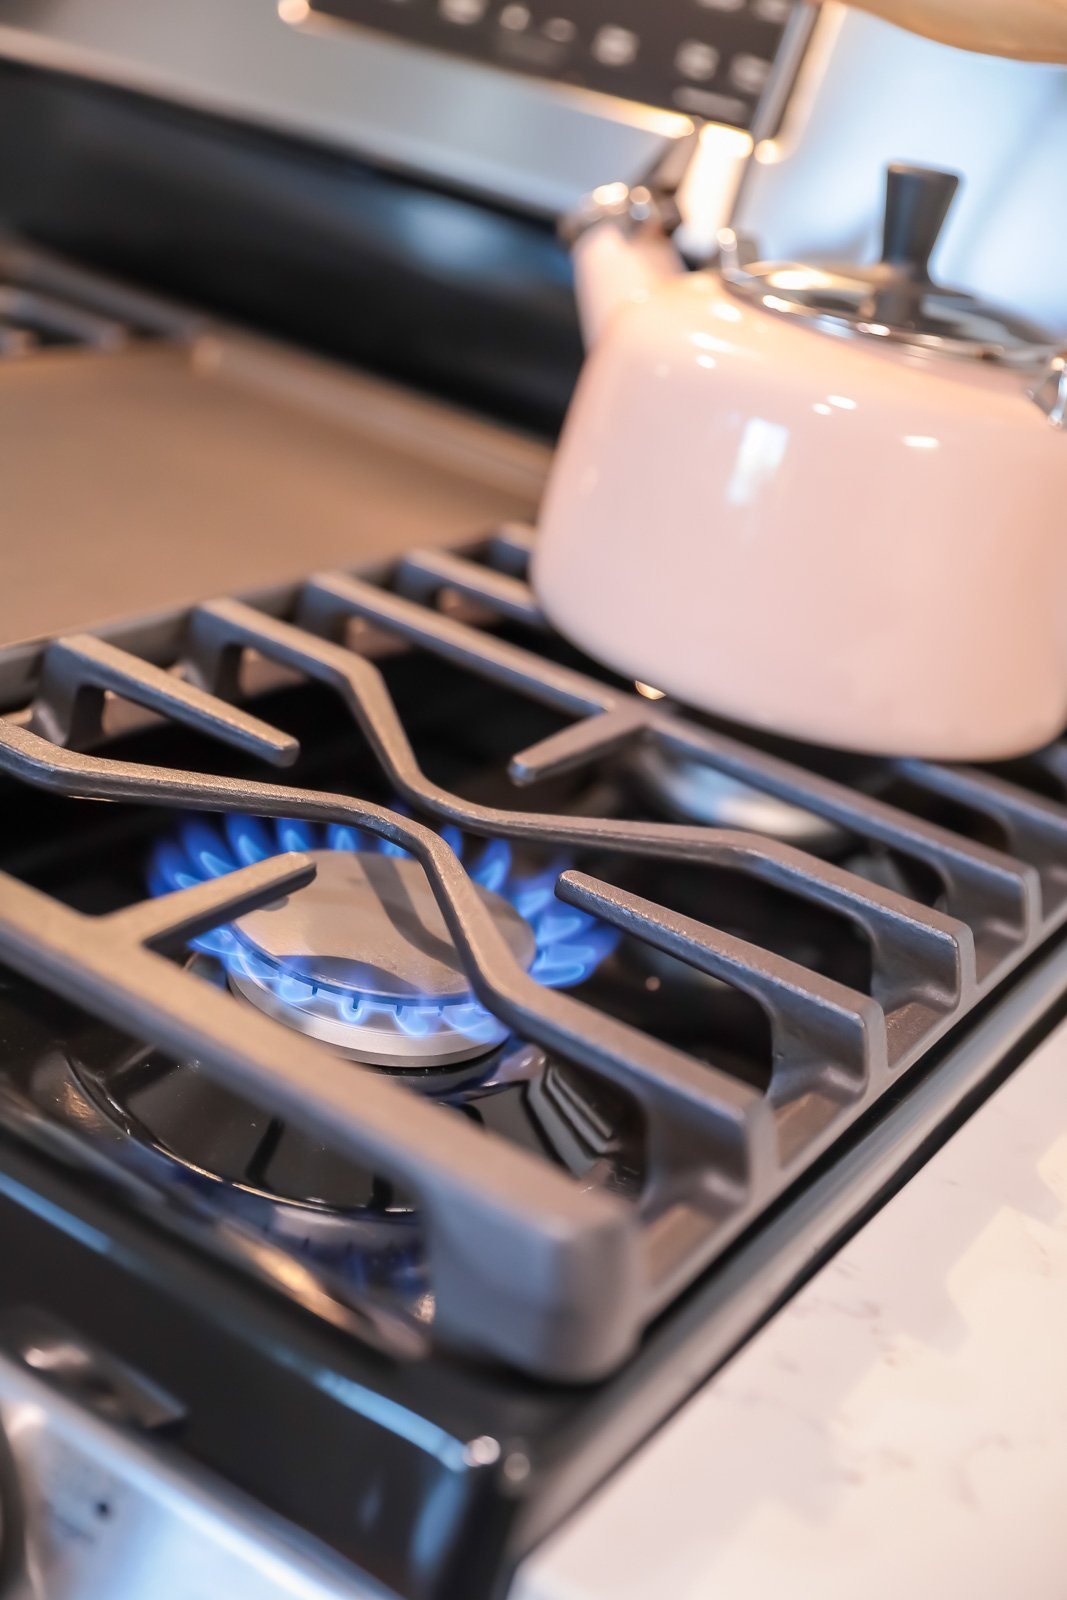 Gas range cooktop with griddle